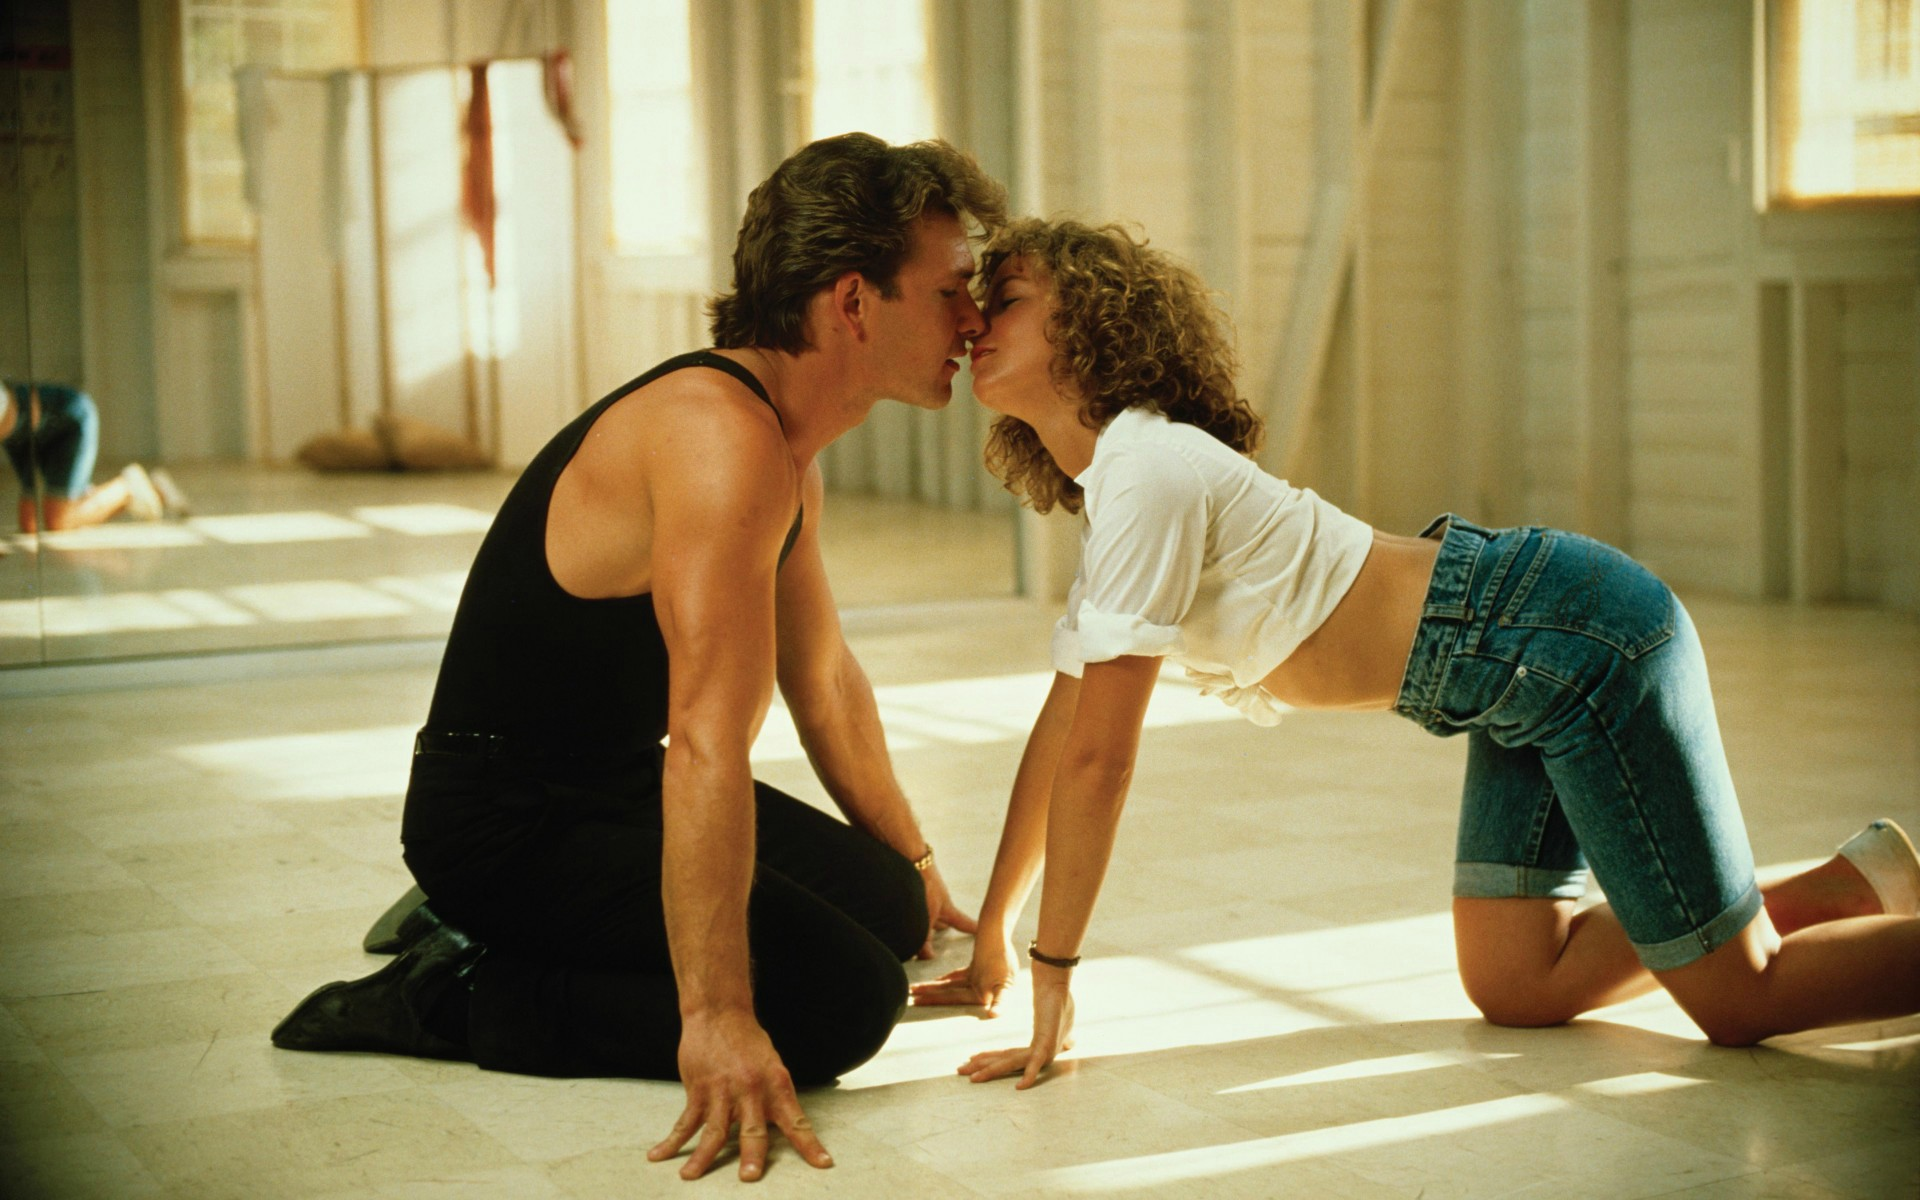 Dirty Dancing kiss Patrick Swayze e Jennifer Grey cult cinema bacio cult stories danza film adolescenza cultstories.altervista.org dirty dancing 2 dirty dancing 2 streaming dirty dancing streaming ita dirty dancing canzoni dirty dancing film dirty dancing musical dirty dancing remake dirty dancing baby dirty dancing youtube dirty dancing 3 dirty dancing dirty dancing streaming dirty dancing cast dirty dancing attori dirty dancing anno dirty dancing altadefinizione dirty dancing attrice dirty dancing anno di uscita dirty dancing album dirty dancing abc dirty dancing actors dirty dancing aforismi dirty dancing attore morto a dirty dancing workout a tribute to dirty dancing a quote from dirty dancing a lover boy dirty dancing a review of dirty dancing dirty dancing a milano dirty dancing a teatro dirty dancing a verona dirty dancing a cuba a girl dirty dancing dirty dancing à paris dirty dancing à nantes dirty dancing à lyon dirty dancing à lille dirty dancing à bordeaux dirty dancing à marseille dirty dancing à rouen dirty dancing à la télé dirty dancing à montpellier dirty dancing à strasbourg film similaire à dirty dancing apprendre à danser dirty dancing dirty dancing à londres dirty dancing à genève dirty dancing balli proibiti dirty dancing ballo finale dirty dancing ballo dirty dancing balli proibiti streaming dirty dancing bacio dirty dancing ballo iniziale dirty dancing bari dirty dancing bolzano dirty dancing baby oggi the product g&b dirty dancing video g&b dirty dancing product g&b dirty dancing product g&b dirty dancing zippy product g&b dirty dancing lyrics b.o dirty dancing doe b dirty dancing doe b dirty dancing download product g&b dirty dancing mp3 product g&b dirty dancing download dirty dancing canzoni del film dirty dancing cineblog dirty dancing collegno dirty dancing cry to me dirty dancing che ballo è dirty dancing cocomero dirty dancing citazioni dirty dancing curiosità dirty dancing cd dirty dancing c c pas bien dirty dancing c pas bien dirty dancing 2 dirty dancing c'est quoi ton vrai nom bébé dirty dancing c'est quoi dirty dancing c'est pas bien dirty dancing c'est mon espace dirty dancing download dirty dancing due dirty dancing dvd dirty dancing download ita dirty dancing di che anno è dirty dancing dance dirty dancing deleted scenes dirty dancing dietro le quinte dirty dancing doppiatori dirty dancing deleted scene canzoni di dirty dancing frasi di dirty dancing baby di dirty dancing attore di dirty dancing immagini di dirty dancing attori di dirty dancing oggi canzoni di dirty dancing 2 video di dirty dancing maledizione di dirty dancing trama di dirty dancing dirty dancing empoli dirty dancing eng streaming dirty dancing english streaming dirty dancing eng dirty dancing errori dirty dancing enrique dirty dancing english subtitles dirty dancing era l'estate del 1963 dirty dancing età baby baby e dirty dancing che ballo è dirty dancing di che anno è dirty dancing dove è ambientato dirty dancing testo e traduzione dirty dancing e true hollywood story dirty dancing watch online film come grease e dirty dancing belen e stefano dirty dancing casting e provini dirty dancing ben e king dirty dancing dirty dancing è una storia vera dirty dancing film completo dirty dancing frasi dirty dancing finale dirty dancing film senza limiti dirty dancing film completo in italiano youtube dirty dancing foto dirty dancing film intero dirty dancing full movie dirty dancing film in italiano dirty dancing f stadthalle halle f dirty dancing sitzplan halle f dirty dancing stadthalle wien halle f dirty dancing dirty dancing gif dirty dancing griffin dirty dancing gadget dirty dancing guida tv dirty dancing groupon dirty dancing game dirty dancing gossolengo dirty dancing grey dirty dancing goofs dirty dancing genre g&b product dirty dancing g&b product dirty dancing zippy kenny g dirty dancing g&b feat. santana - dirty dancing dirty dancing havana nights dirty dancing havana nights streaming dirty dancing hot dirty dancing hey baby dirty dancing hungry eyes dirty dancing hd dirty dancing ho portato un cocomero dirty dancing havana dirty dancing hotel dirty dancing how i met your mother dirty dancing h dirty dancing ita dirty dancing italia dirty dancing in tv dirty dancing imdb dirty dancing immagini dirty dancing italia 1 dirty dancing ita streaming dirty dancing in streaming dirty dancing il film dirty dancing in tv oggi baby i dirty dancing penny i dirty dancing patrick swayze i dirty dancing musik i dirty dancing dirty dancing i had the time of my life i've had the time of my life lyrics dirty dancing dirty dancing i had the time of my life lyrics dirty dancing i a love man dirty dancing i dirty dancing i tv dirty dancing i operaen dirty dancing i carried a watermelon dirty dancing i tivoli dirty dancing i musikhuset århus i dirty dancing dirty dancing di mengon matteo dirty dancing johnny dirty dancing jennifer grey dirty dancing johnny's mambo dirty dancing johnny age dirty dancing jane brucker dirty dancing just a little bit longer dirty dancing johnny and baby dirty dancing johnny mambo dirty dancing jennifer warnes dirty dancing jennifer grey patrick swayze jessie j dirty dancing in the moonlight lyrics jessie j dirty dancing in the moonlight j grey dirty dancing jessie j dirty dancing in the moonlight youtube jessie j dirty dancing jessie j dirty dancing in the moonlight mp3 download jessie j dirty dancing in the moonlight free mp3 download jessie j - dirty dancing in the moonlight mp3 jlo dirty dancing jessie j dirty dancing in the moonlight free download dirty dancing kiss dirty dancing kelly bishop dirty dancing karaoke dirty dancing kellerman song dirty dancing kiss scene dirty dancing kellerman's resort dirty dancing kickass dirty dancing kellerman's anthem dirty dancing kissing scene dirty dancing kissing scenes k streaming dirty dancing dirty dancing location dirty dancing libro dirty dancing lyrics dirty dancing love scene dirty dancing live dirty dancing lido riccio dirty dancing luoghi dirty dancing lisa dirty dancing lingua originale dirty dancing le canzoni l'attrice di dirty dancing l'attore di dirty dancing l'attrice di dirty dancing oggi l'attrice di dirty dancing foto dirty dancing l l'arnacoeur dirty dancing l'arnacoeur dirty dancing scene l'arnacoeur dirty dancing video l'arnacoeur danse dirty dancing l'arnacoeur youtube dirty dancing dirty dancing meme dirty dancing mambo dirty dancing musical milano dirty dancing movie dirty dancing musical cast dirty dancing musical date 2016 dirty dancing mediaset dirty dancing matrimonio dirty dancing mymovies m.youtube.dirty dancing m.r. fletcher dirty dancing m pokora katrina dirty dancing dirty dancing m m pokora dirty dancing danse avec les stars m pokora et katrina dirty dancing m pokora dirty dancing m pokora katrina patchett dirty dancing dirty dancing nowvideo dirty dancing nuovo film dirty dancing nicole scherzinger dirty dancing nobody puts baby in the corner dirty dancing nessuno mette baby in un angolo dirty dancing nowvideo ita dirty dancing netflix dirty dancing nomi protagonisti dirty dancing nuova versione dirty dancing nonciclopedia rock n roll dirty dancing dirty dancing n twist n shout dirty dancing dirty dancing ortona dirty dancing ost dirty dancing oscar dirty dancing olbia dirty dancing online dirty dancing oggi dirty dancing oh baby dirty dancing ost download dirty dancing online subtitrat dirty dancing ortona mappa flashdance e dirty dancing grease o dirty dancing conan o brien dirty dancing tosh o dirty dancing ciekawostki o dirty dancing o czym jest dirty dancing dirty dancing oh lover boy o s t dirty dancing dirty of dancing dirty dancing of havana nights dirty dancing of tour of dirty dancing making of dirty dancing remake of dirty dancing cast of dirty dancing musical plot of dirty dancing story of dirty dancing location of dirty dancing video of dirty dancing cast of dirty dancing london review of dirty dancing dirty dancing personaggi dirty dancing parodia dirty dancing piratestreaming dirty dancing plot dirty dancing presa dirty dancing penny dirty dancing patrick dirty dancing poster dirty dancing pachanga dirty dancing parody dirty dancing p dirty dancing quotes dirty dancing questa sera dirty dancing quando in tv dirty dancing questo è il mio spazio dirty dancing qartulad online dirty dancing quella scena troppo hot che il regista tagliò quotes from dirty dancing nobody puts baby in the corner dirty dancing quotes baby to johnny dirty dancing qpac dirty dancing quiz q music dirty dancing dirty dancing q q significa dirty dancing dirty dancing remake cast dirty dancing recensione dirty dancing remix dirty dancing roma dirty dancing robbie dirty dancing retroscena dirty dancing review dirty dancing remake 2014 cast dirty dancing reboot dirty dancing r&b dirty dancing r&b songs dirty dancing soundtrack dirty dancing scena finale dirty dancing streaming eng dirty dancing song dirty dancing songs dirty dancing scene dirty dancing streaming nowvideo dirty dancing streaming hd dirty dancing serie tv a.s.d. dirty dancing academy patrick s dirty dancing san diego dirty dancing san antonio dirty dancing san francisco dirty dancing dirty dancing s prevodom kellerman's hotel dirty dancing dirty dancing trailer dirty dancing time of my life dirty dancing trama dirty dancing testo dirty dancing tv dirty dancing traduzione dirty dancing tumblr dirty dancing trailer ita dirty dancing teatro dirty dancing tntvillage t shirt dirty dancing dirty dancing t shirts 80s kellerman's t shirt dirty dancing t pain dirty dancing song t shirt printing dirty dancing dirty dancing t shirts uk dirty dancing t shirt transfers junggesellenabschied t-shirt dirty dancing dirty dancing t shirts i carried a watermelon dirty dancing uk dirty dancing uscita in italia dirty dancing ultimo ballo dirty dancing ultima scena youtube dirty dancing dirty dancing uncut version dirty dancing ultimate soundtrack dirty dancing uncut dirty dancing ultimate edition dirty dancing usher youtube dirty dancing wedding youtube dirty dancing commercial youtube dirty dancing movie youtube charlie dirty dancing dirty dancing u močvari dirty dancing u s tour u don't own me dirty dancing dirty dancing temporada única dirty dancing video dirty dancing vestiti dirty dancing verona dirty dancing vinyl dirty dancing video censurato dirty dancing vietato dirty dancing video ballo finale dirty dancing versione integrale streaming dirty dancing video mediaset dirty dancing vodlocker grease v dirty dancing dirty dancing v.o dirty dancing v dirty dancing wikipedia dirty dancing wii dirty dancing wikiquote dirty dancing wipeout dirty dancing watch online dirty dancing wedding dirty dancing watermelon dirty dancing washington dc dirty dancing wallpaper dirty dancing will you still love me tomorrow dirty dancing w polskich kinach taniec w dirty dancing big w dirty dancing jaki taniec w dirty dancing kto śpiewa w dirty dancing kto gral w dirty dancing new commercial w dirty dancing music sukienka w stylu dirty dancing dirty dancing w cda muzyka w filmie dirty dancing biglietti x dirty dancing dirty x dancing x factor dirty dancing x factor dirty dancing audition x factor dirty dancing 2012 x factor steve dirty dancing dirty dancing x reader spain x reader dirty dancing x factor piosenka z dirty dancing dirty x dancing hamburg dirty dancing you don't own me dirty dancing yahoo dirty dancing yes dirty dancing youtube film completo dirty dancing youtube italiano dirty dancing youtube full movie dirty dancing you're the one dirty dancing youtube hungry eyes dirty dancing yes lyrics cañizares y mayte dirty dancing dirty dancing macu y machu picchu y dirty dancing hungry eyes tlumaczenie patrick swayze y dirty dancing cañizares y mujer dirty dancing actor y actriz dirty dancing maite y santi dirty dancing macu y machu dirty dancing dirty y dancing en español drake y terra dirty dancing dirty dancing zumba dirty dancing zurich dirty dancing zippy dirty dancing zenith lille dirty dancing zene dirty dancing zusammenfassung dirty dancing zitat dirty dancing zitate deutsch dirty dancing zdjecia dirty dancing zitate piosenki z dirty dancing cytaty z dirty dancing muzyka z dirty dancing piosenki z dirty dancing 2 muzyka z dirty dancing 2 piosenka z dirty dancing 2 taniec z dirty dancing aktorka z dirty dancing sukienka z dirty dancing piosenki z dirty dancing youtube dirty dancing 02 dirty dancing cineblog01 dirty dancing trackid=sp-006 dirty dancing 01.09.14 dirty dancing 01.09 tosh 0 dirty dancing dirty dancing 1 streaming dirty dancing 1987 dirty dancing 1080p dirty dancing 1 cast dirty dancing 1 film senza limiti dirty dancing 18+ dirty dancing 1987 full movie watch online dirty dancing 1 trailer dirty dancing 1987 soundtrack dirty dancing 1987 streaming 1. dirty dancing – colonna sonora #1 dirty dancing - soundtrack 1. dirty dancing - anything from the soundtrack 1. dirty dancing - bande originale 1. dirty dancing – banda sonora italia 1 dirty dancing dirty dancing 1 streaming italiano 1 channel dirty dancing dirty dancing 2 film dirty dancing 2 altadefinizione dirty dancing 2016 dirty dancing 2 film senza limiti dirty dancing 2 soundtrack dirty dancing 2 patrick swayze dirty dancing 2 ita dirty dancing 2 streaming eng dirty dancing 2 youtube 2. dirty dancing - black eyed peas dirty dancing 2 / dirty dancing havana nights dirty dancing 2 full movie dirty dancing 2 streaming ita dirty dancing 2 trailer dirty dancing 2 watch online dirty dancing 2 film completo dirty dancing 2 imdb dirty dancing 3 wikipedia dirty dancing 3 film completo ita dirty dancing 3 streaming italiano dirty dancing 3 trama dirty dancing 3 streaming megavideo dirty dancing 3 full movie dirty dancing 3 capoeira nights trailer dirty dancing 3 capoeira nights wiki dirty dancing 3 capoeira nights download dirty dancing 3 cast sims 3 dirty dancing dirty dancing 3 trailer dirty dancing 3 capoeira nights streaming ita just dance 3 dirty dancing dirty dancing 4 trailer dirty dancing 4/12 dirty dancing 4 may dirty dancing 4 mars 2015 dirty dancing 4 march dirty dancing 4 february dirty dancing 4 april dirty dancing 4 mars dirty dancing 4 year old dirty dancing for your boyfriend 4 dirty dancing do's & don'ts dirty dancing 4 just dance 4 dirty dancing 4 year old dirty dancing dirty dancing 5 aprile 2016 dirty dancing 5 aprile 2015 dirty dancing 5 curiosità sul film dirty dancing 57 chevy dirty dancing 50 minutes inside dirty dancing 5 may dirty dancing 50s dirty dancing 5th avenue dirty dancing 5 streaming dirty dancing 5 april la 5 dirty dancing canale 5 dirty dancing 5 things dirty dancing pomeriggio 5 dirty dancing channel 5 dirty dancing net 5 dirty dancing 5 year old dirty dancing 5 things in dirty dancing that will surprise you dirty dancing 6/12 dirty dancing 6 may dirty dancing 6 february dirty dancing 60s dirty dancing 6 march dirty dancing 6 year old dirty dancing 63 dirty dancing part 6 dirty dancing 1_6 dirty dancing iphone 6 case 6 year old dirty dancing dirty dancing 6 dirty dancing 6 juin dirty dancing 6 mars dj bridge – 6 dirty dancing coque iphone 6 dirty dancing dirty dancing 720p dirty dancing 720p izle dirty dancing 7 april dirty dancing 7 february dirty dancing 720p mkv dirty dancing 7 may dirty dancing 720p latino dirty dancing 7 december dirty dancing 720p.bluray.x264-septic dirty dancing 720p tpb amici 7 musical dirty dancing pro 7 dirty dancing 7 year old dirty dancing 7 little johnstons dirty dancing dirty dancing liverpool 7 april dirty dancing 7 février 2015 dirty dancing 89.99 dirty dancing 80s fashion dirty dancing 8 year old dirty dancing 8 may dirty dancing 80s dirty dancing 8 yr old dirty dancing 8 april dirty dancing 87 8 tracks dirty dancing dirty dancing 8 june charlie 8 dirty dancing 8 years old dirty dancing boy 8 dirty dancing 8 year dirty dancing 8 year old dirty dancing 8 yr old dirty dancing 8-year-old's 'dirty dancing' goes viral 8 year old dirty dancing youtube 8 year old dirty dancing routine dirty dancing 9 ottobre milano dirty dancing 9gag dirty dancing 9 may dirty dancing 9 february dirty dancing 9 january dirty dancing 9 march dirty dancing 98.5 dirty dancing room 94 lyrics dirty dancing deleted scene 9 dirty dancing 1987 part 9 channel 9 dirty dancing 9 year old dirty dancing 9 year old boy dirty dancing dj bridge – 9 dirty dancing october dirty dancing 9 mai cult stories cultstories cinema cult story cultstory art culture music ipse dixit aneddoti citazioni frasi famose aforismi immagini foto personaggi cultura musica storie facts fatti celebrità vip cult spettacoli live performance concerto photo photography celebrity giornalismo scrittura libri genio pop icon attore cantante solista pittrice scultore attrice star diva sex symbol mito